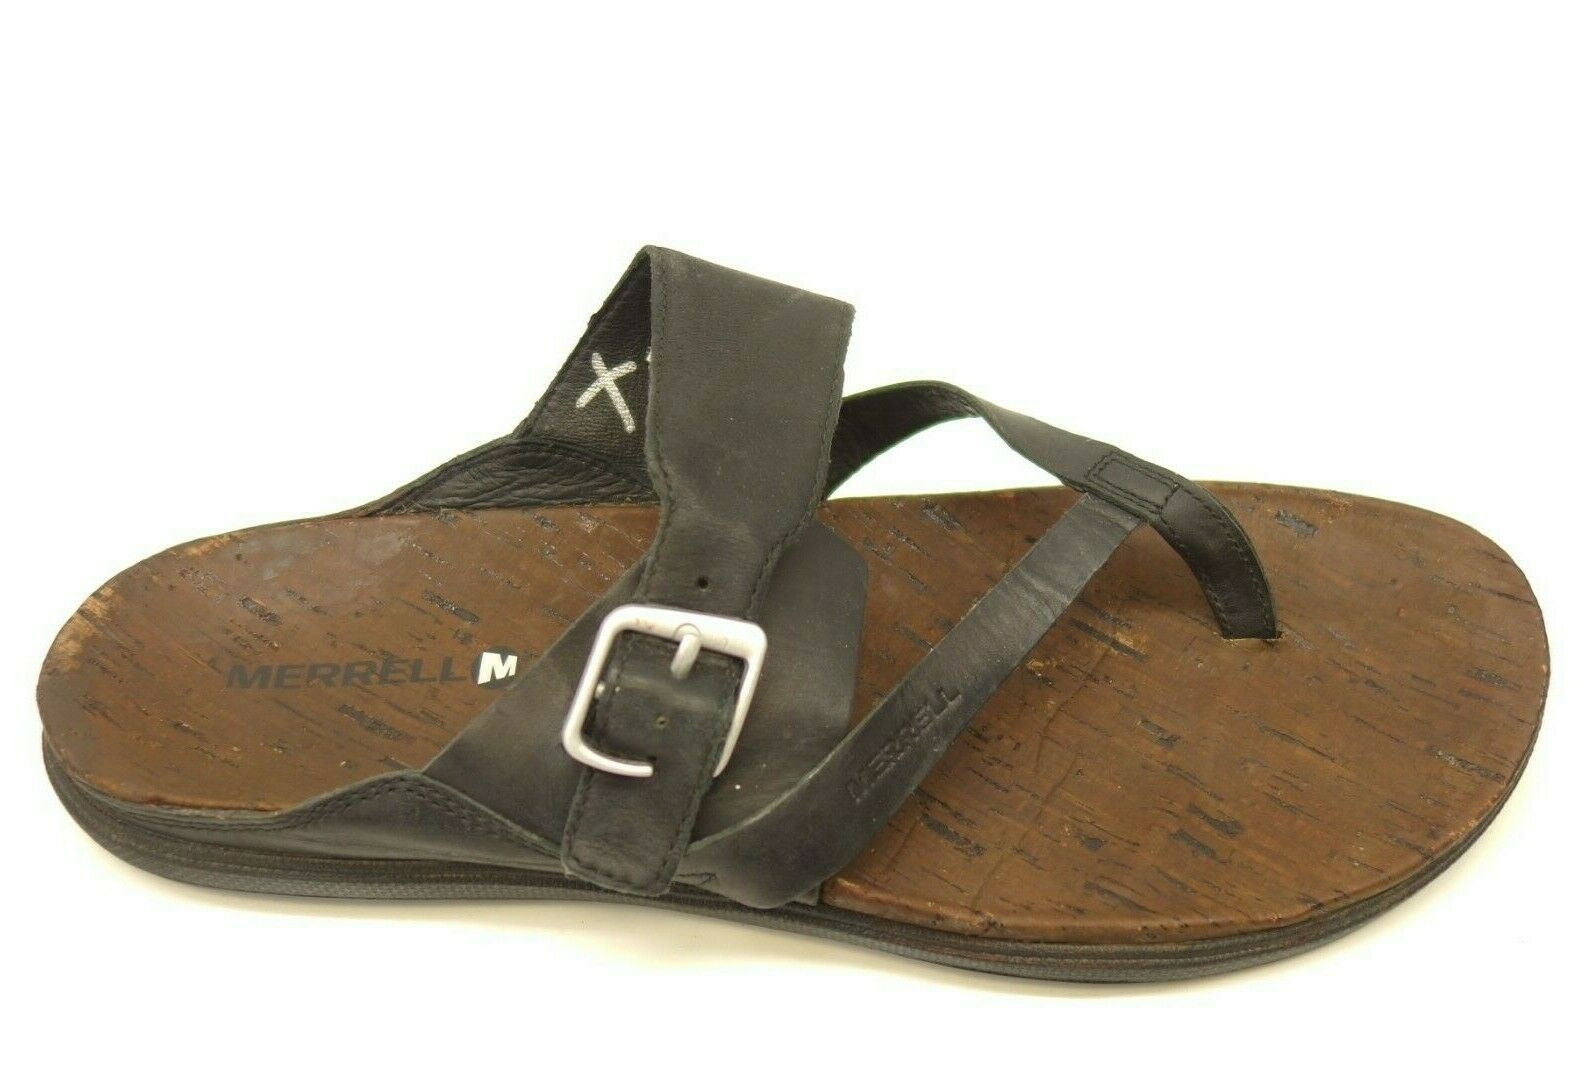 Merrell Around Town Buckle US 11 EU 42 Leather Walking Womens Sandals shoes